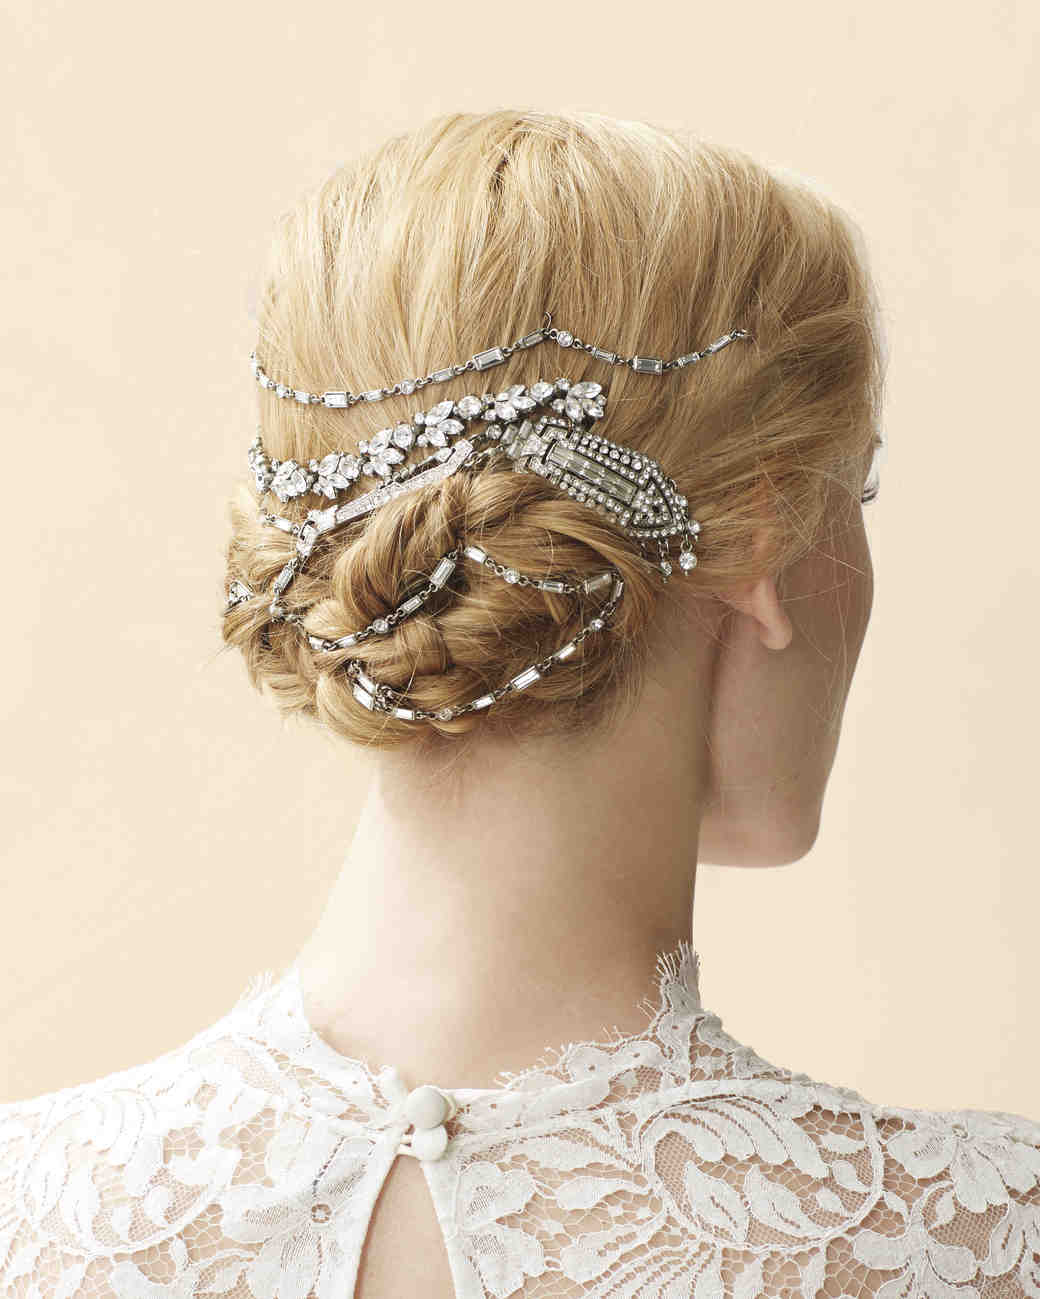 4 Ways To Wear A Short Hairstyle On Your Wedding Day: 4 Stylish Ways To Wear Vintage Jewelry On Your Wedding Day